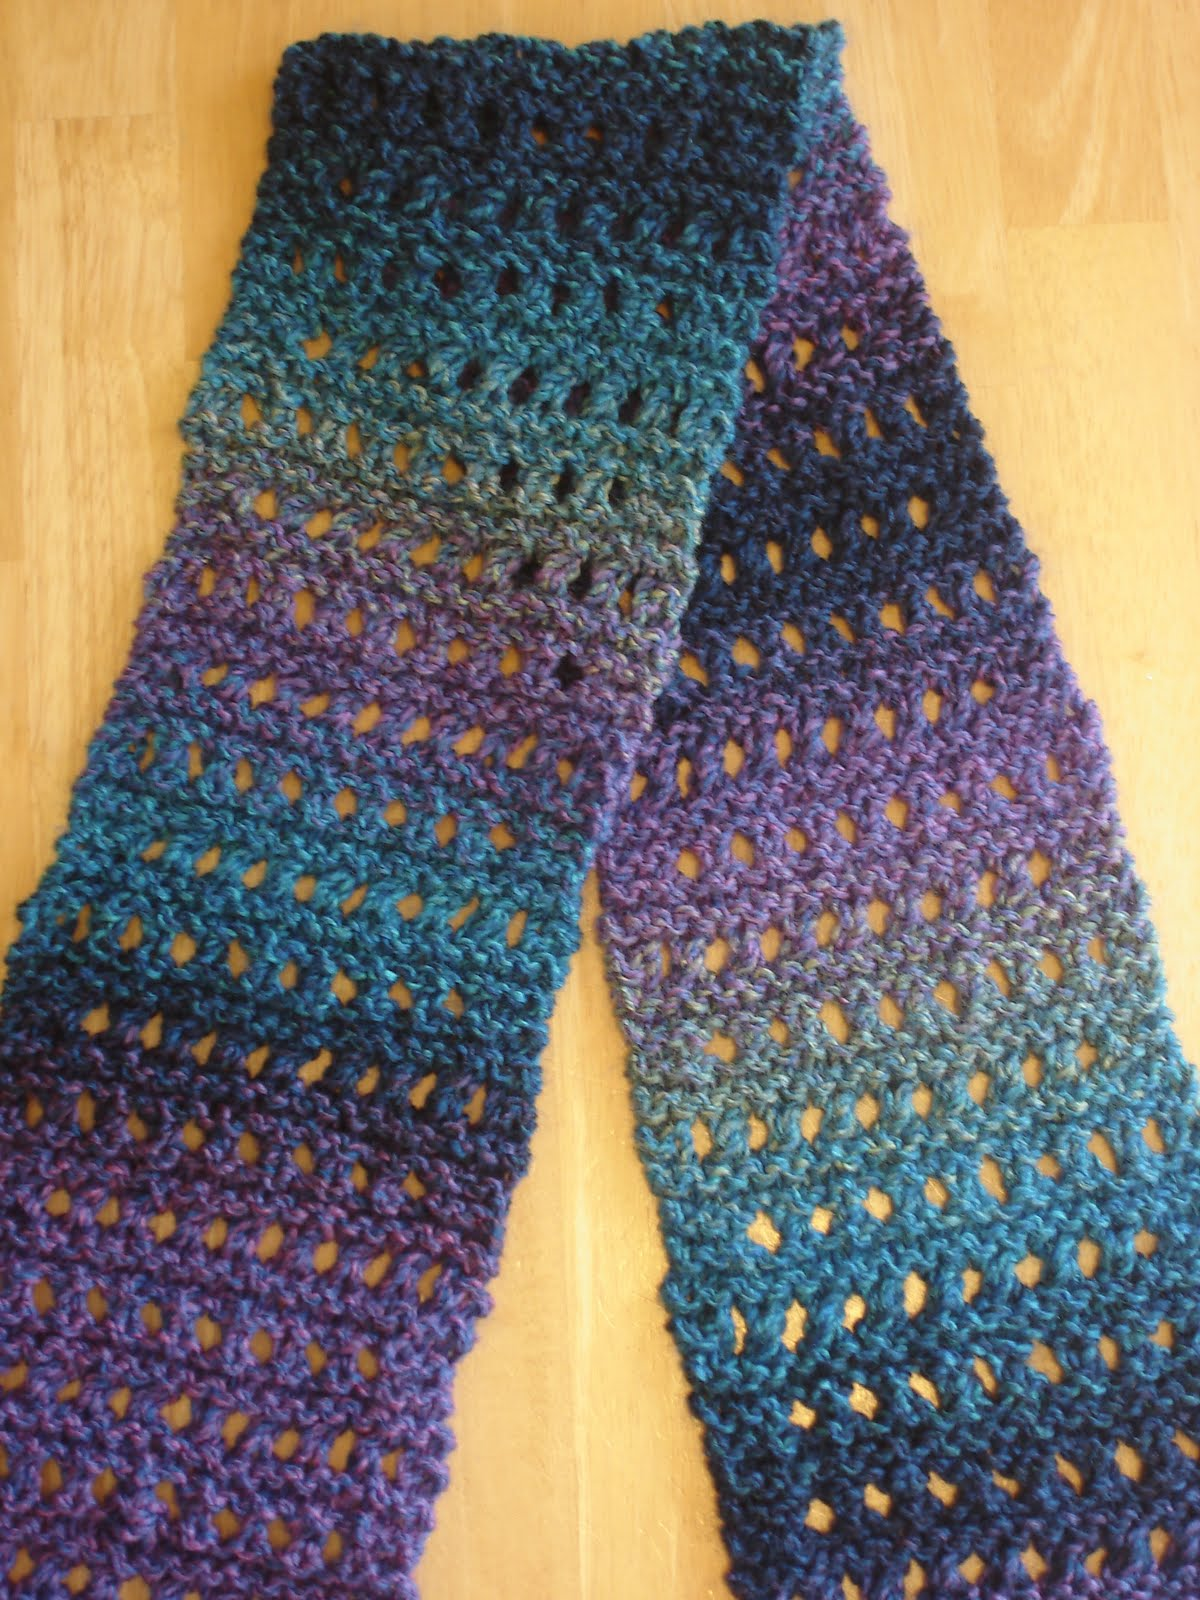 Easy Knitting Stitches Scarves : Fiber Flux: Free Knitting Pattern: Tweedy Eyelet Scarf!